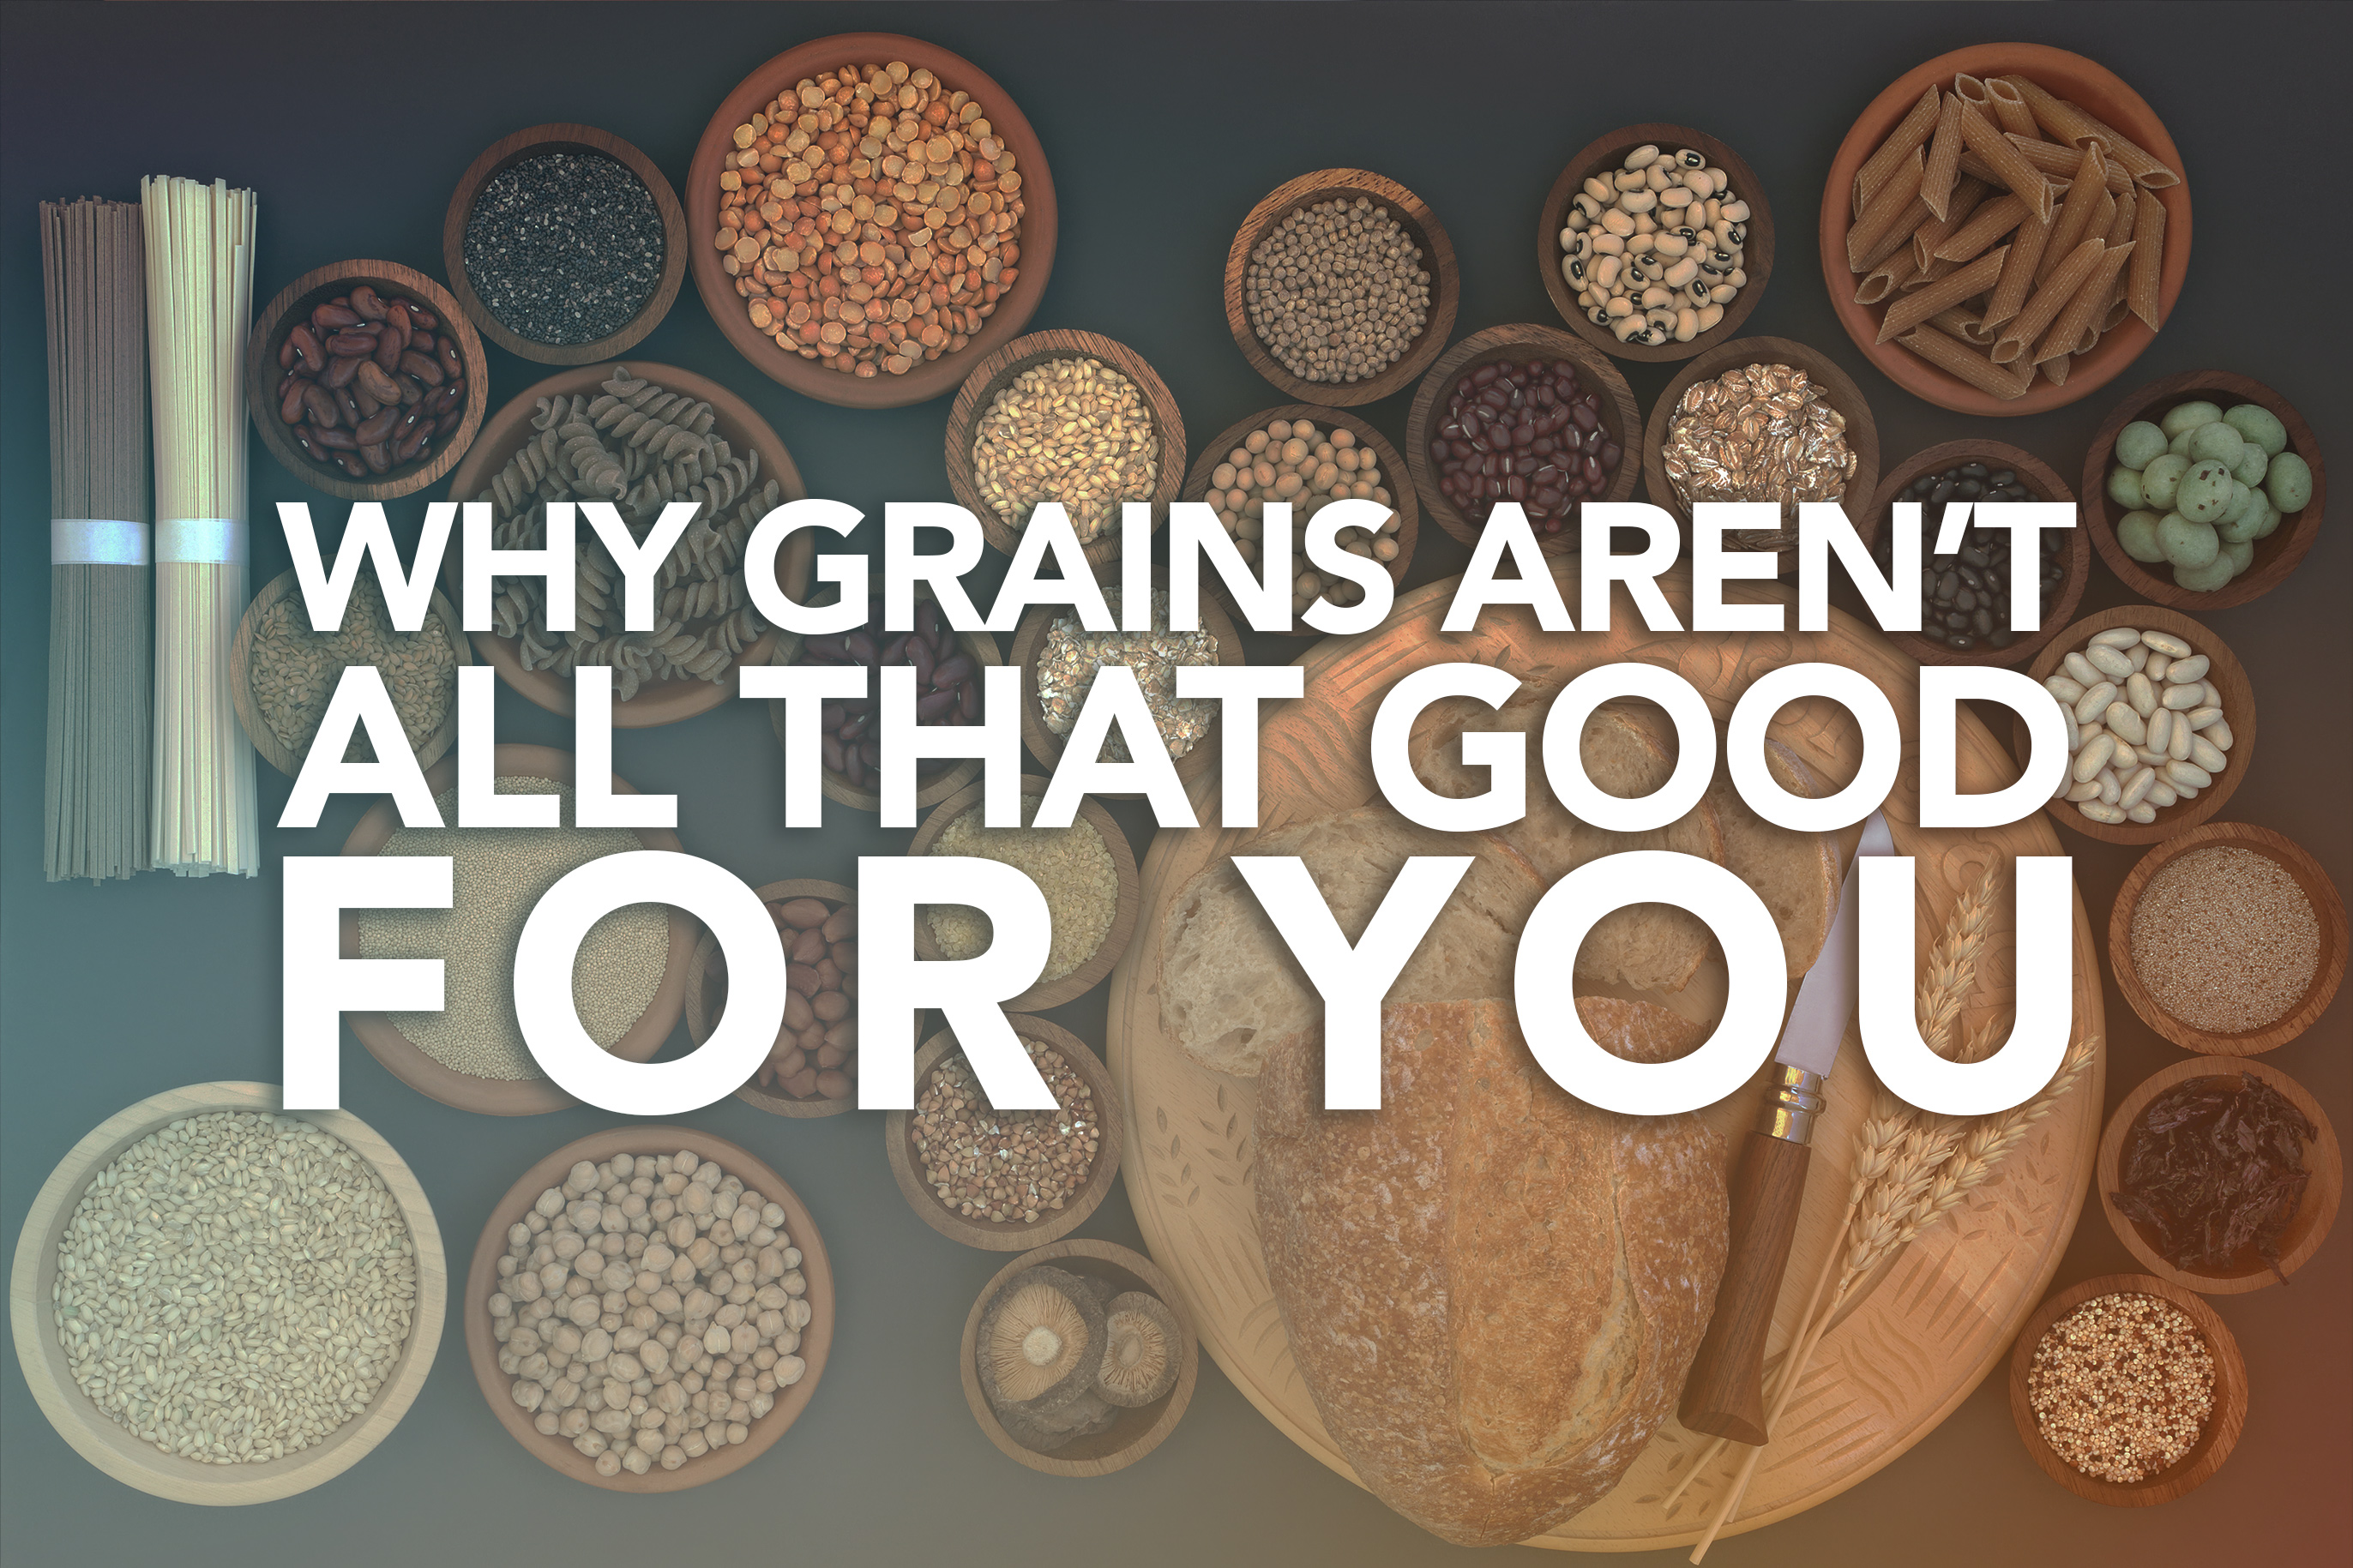 Why Grains Aren't All That Good for You